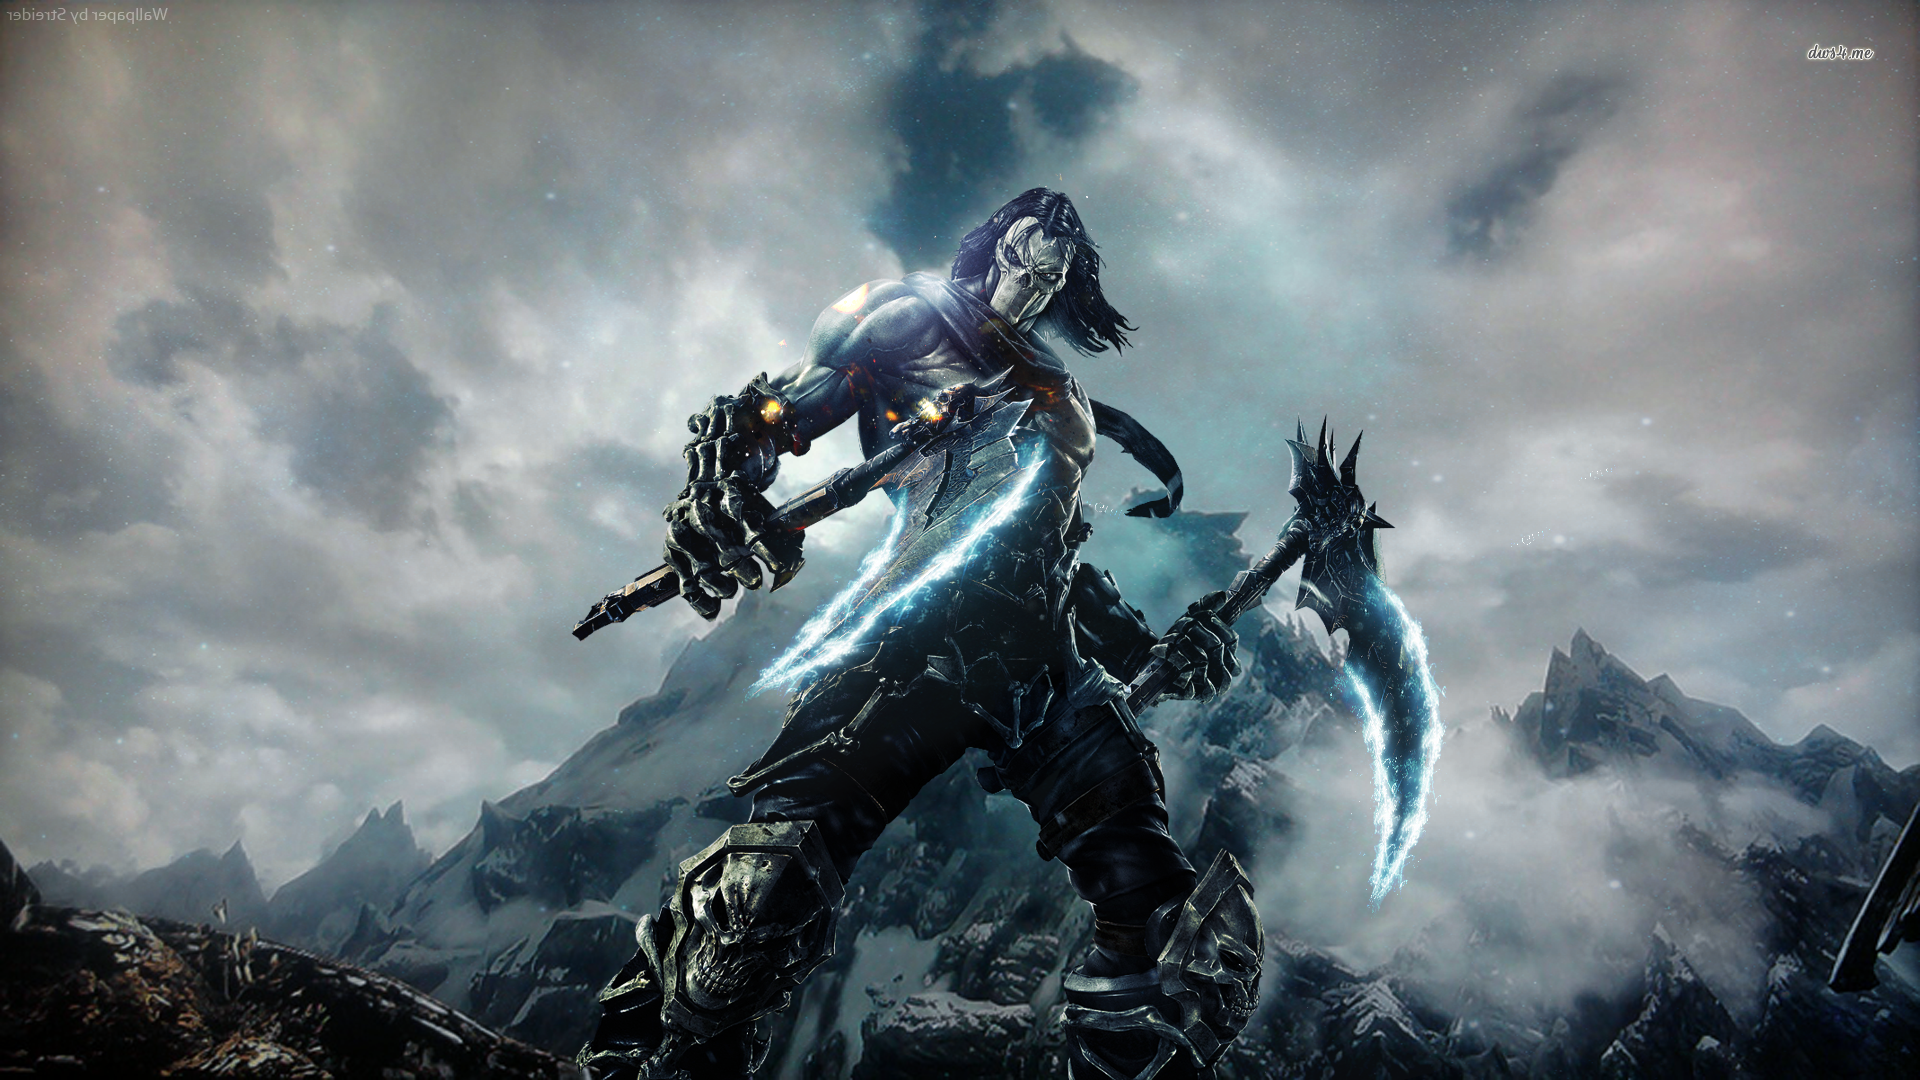 Darksiders 2 wallpaper 1600x900